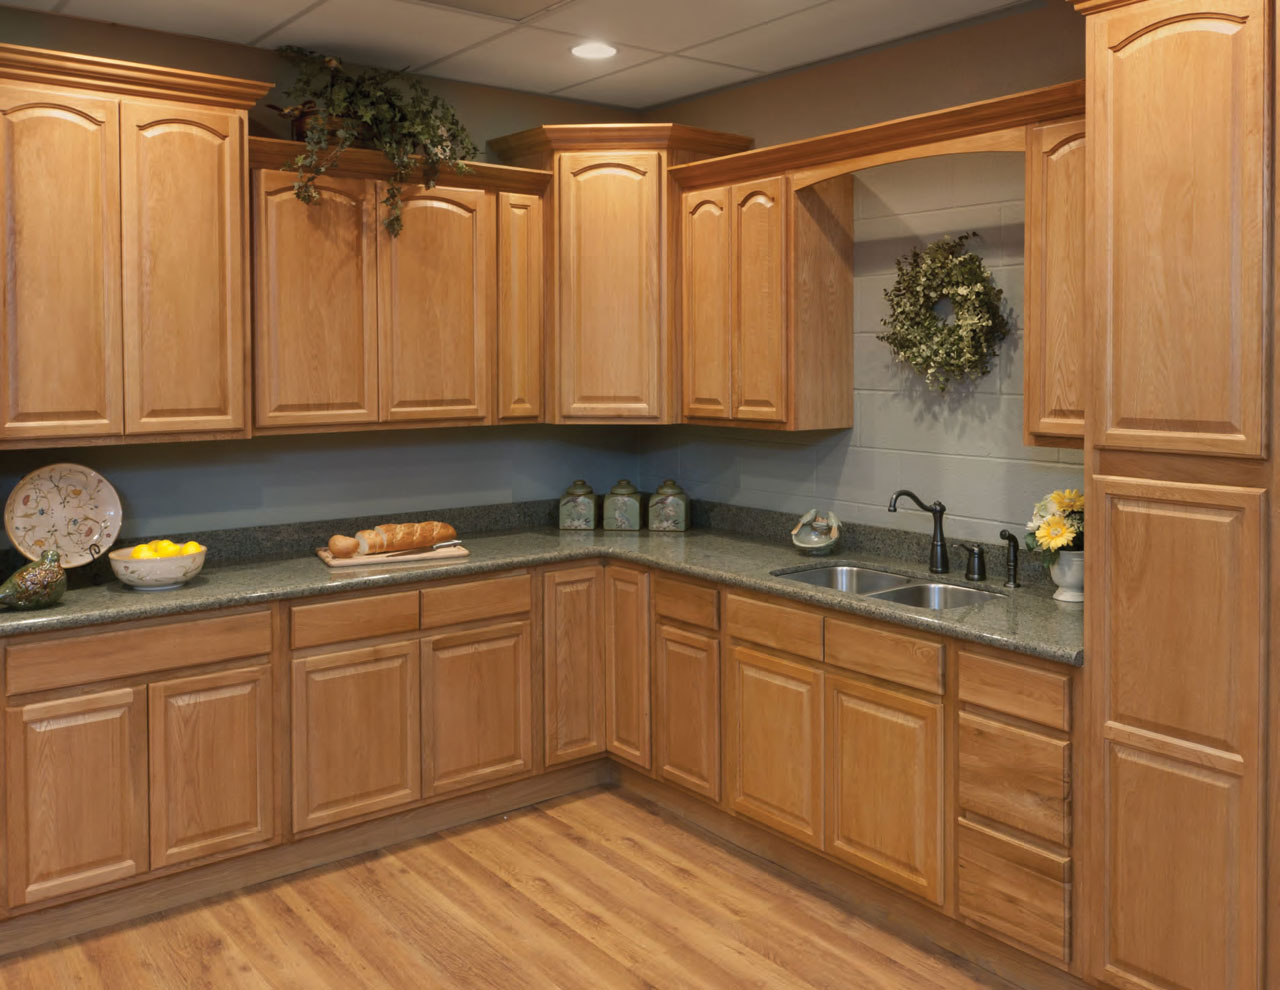 Oak Cathedral Kitchen Cabinets Legacyoak 0 00 Please Contact Us For Your Free Layout And Quote 910 763 4884 Or Email At Info Homeonwers